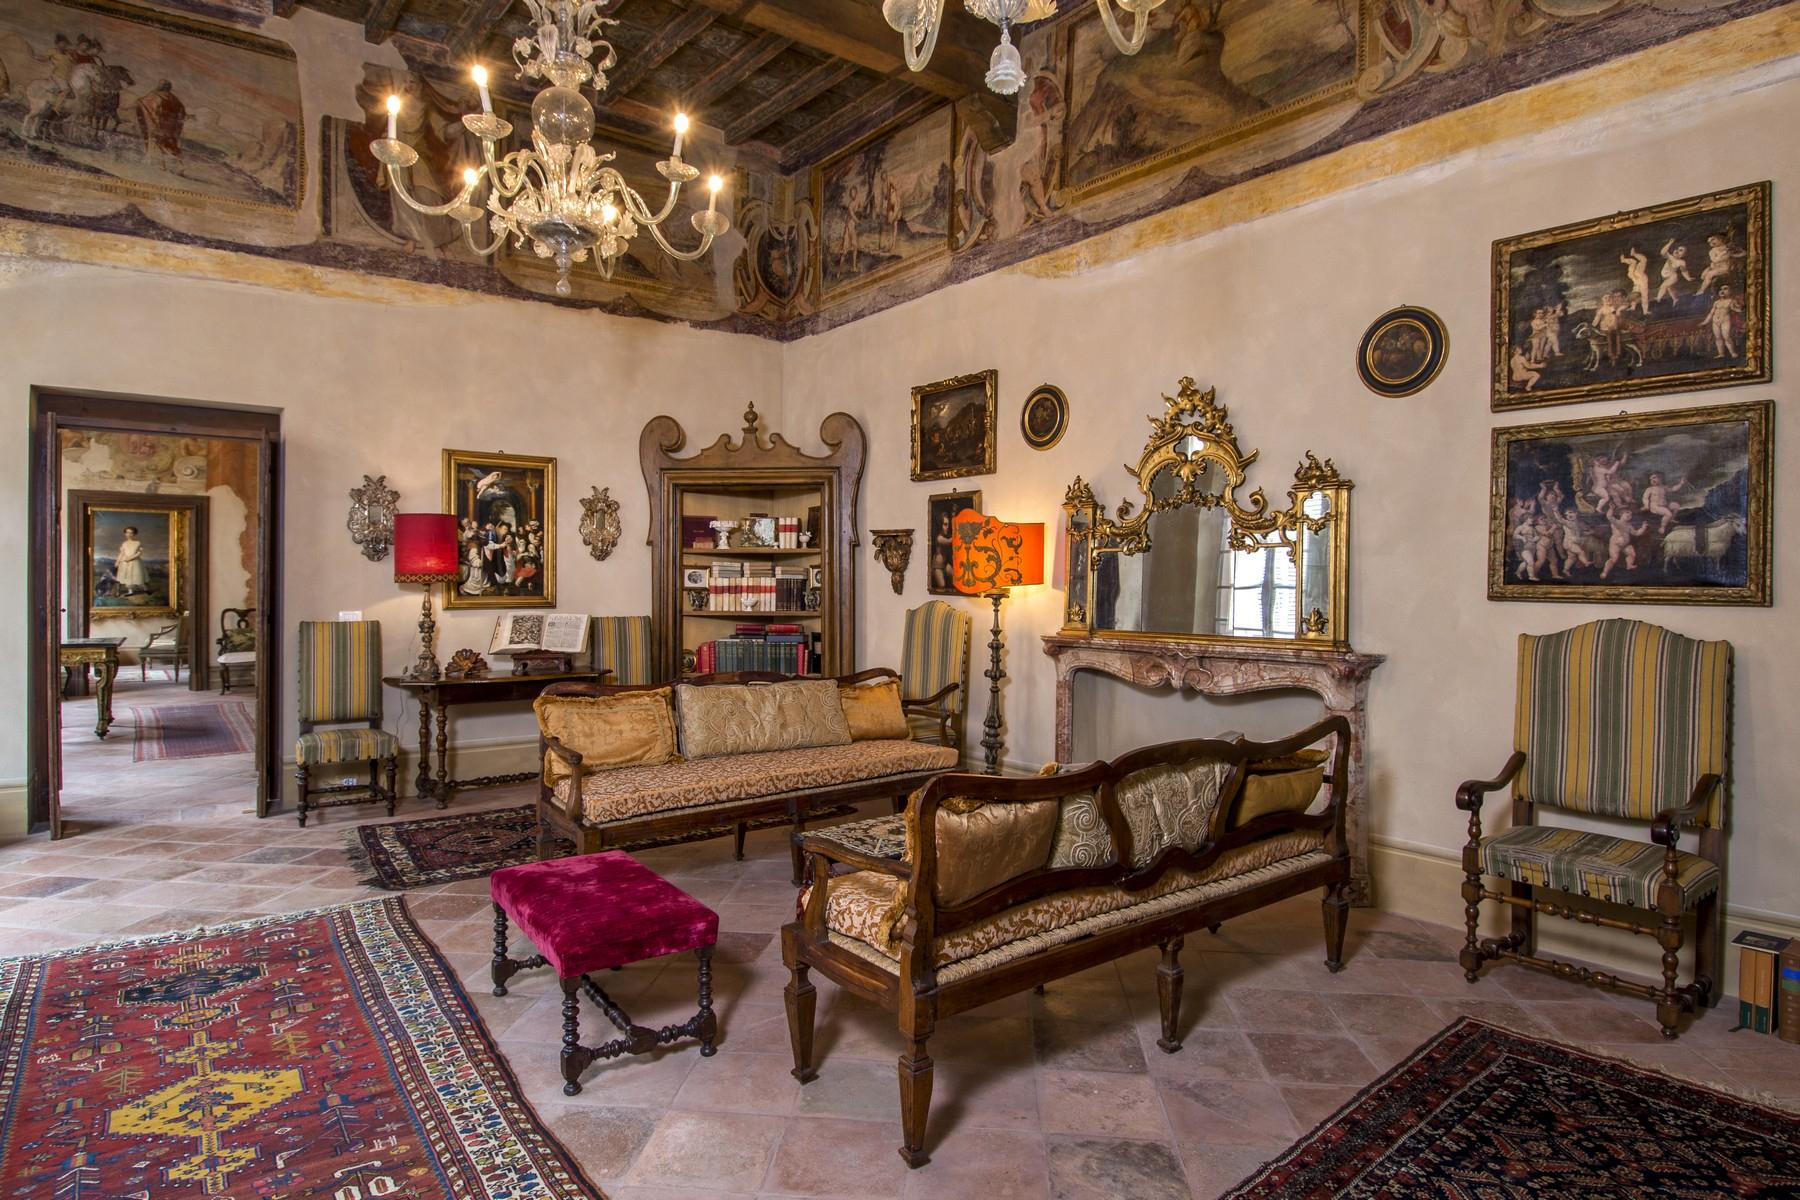 Magnificent historic palace in the heart of Reggio Emilia - 11